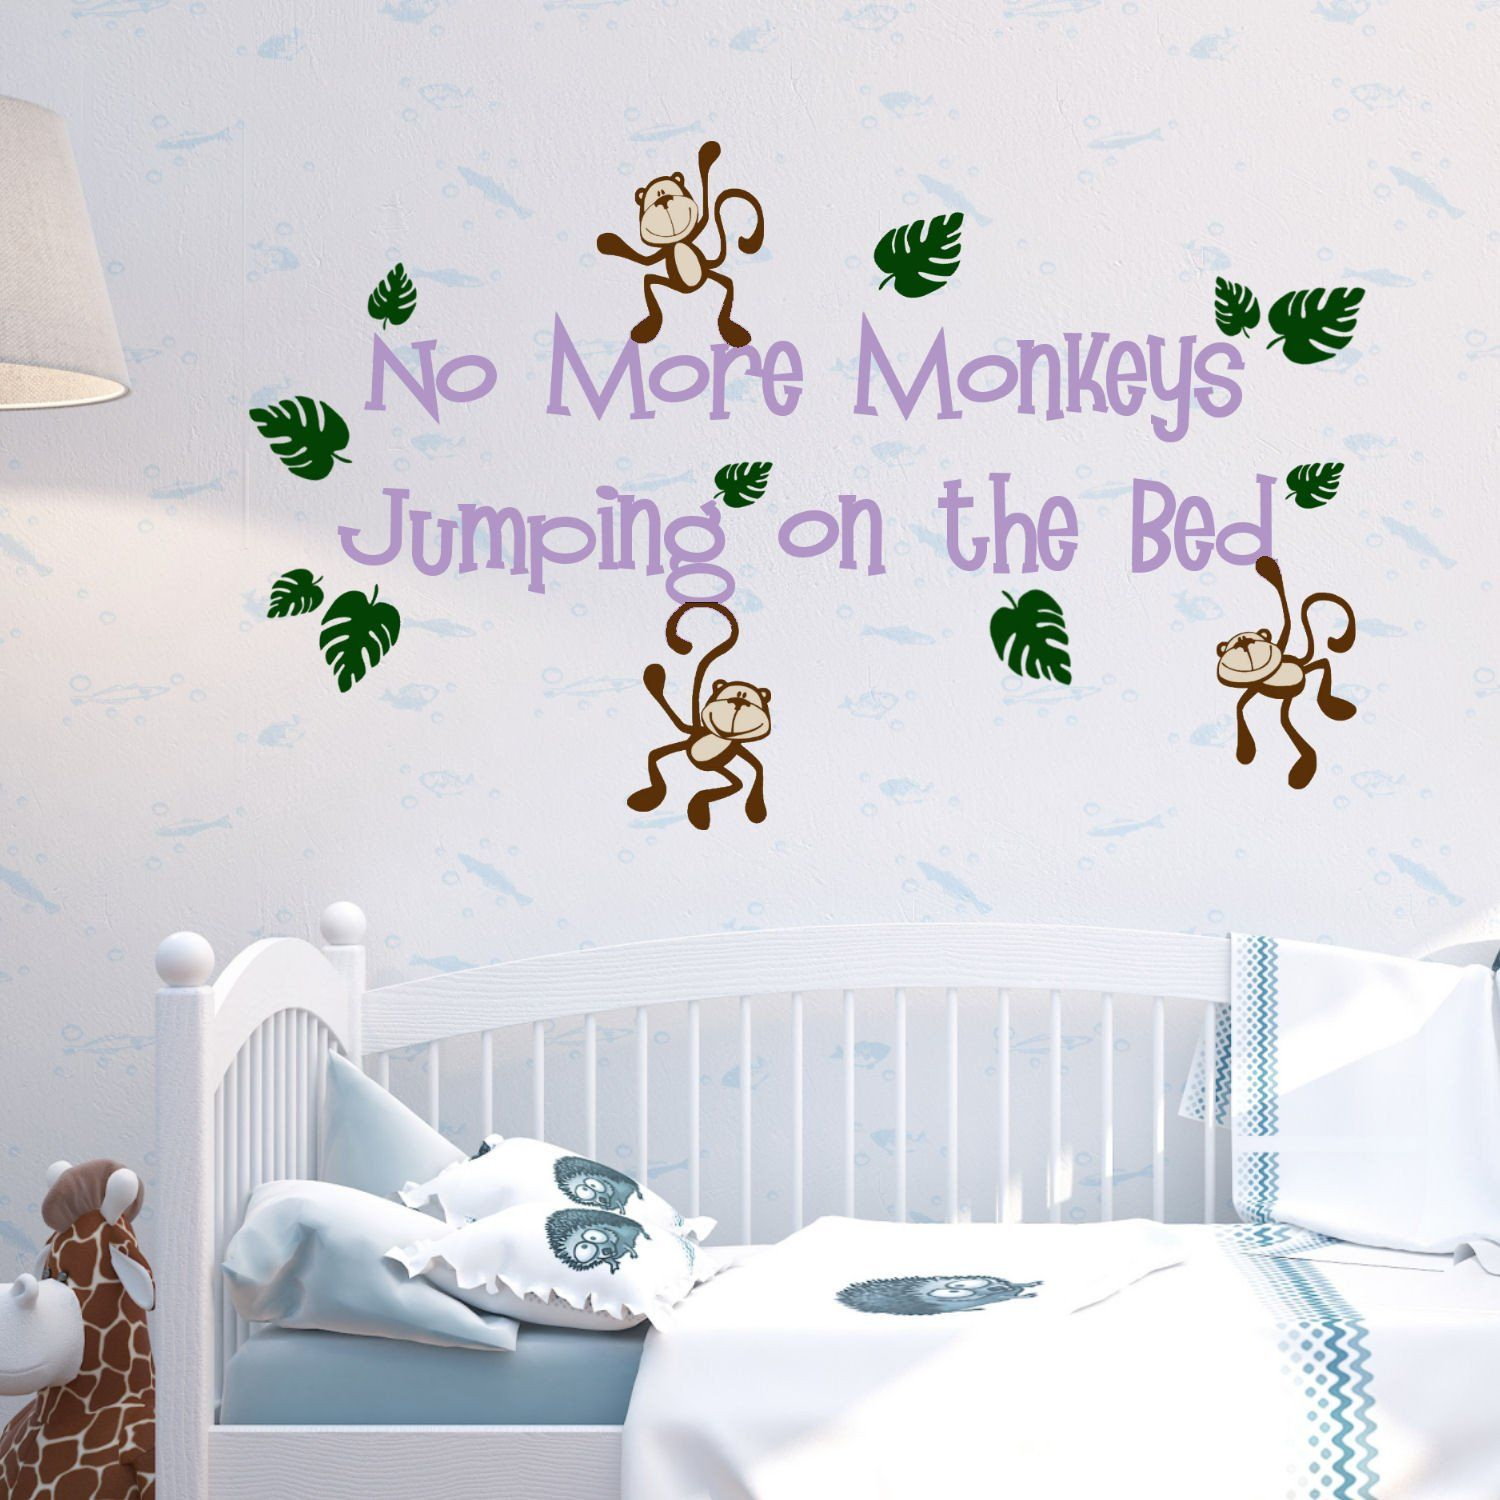 No more monkeys jumping on the bed wall art economic homes 20 best no more monkeys jumping on the bed wall art wall art ideas featured image amipublicfo Image collections